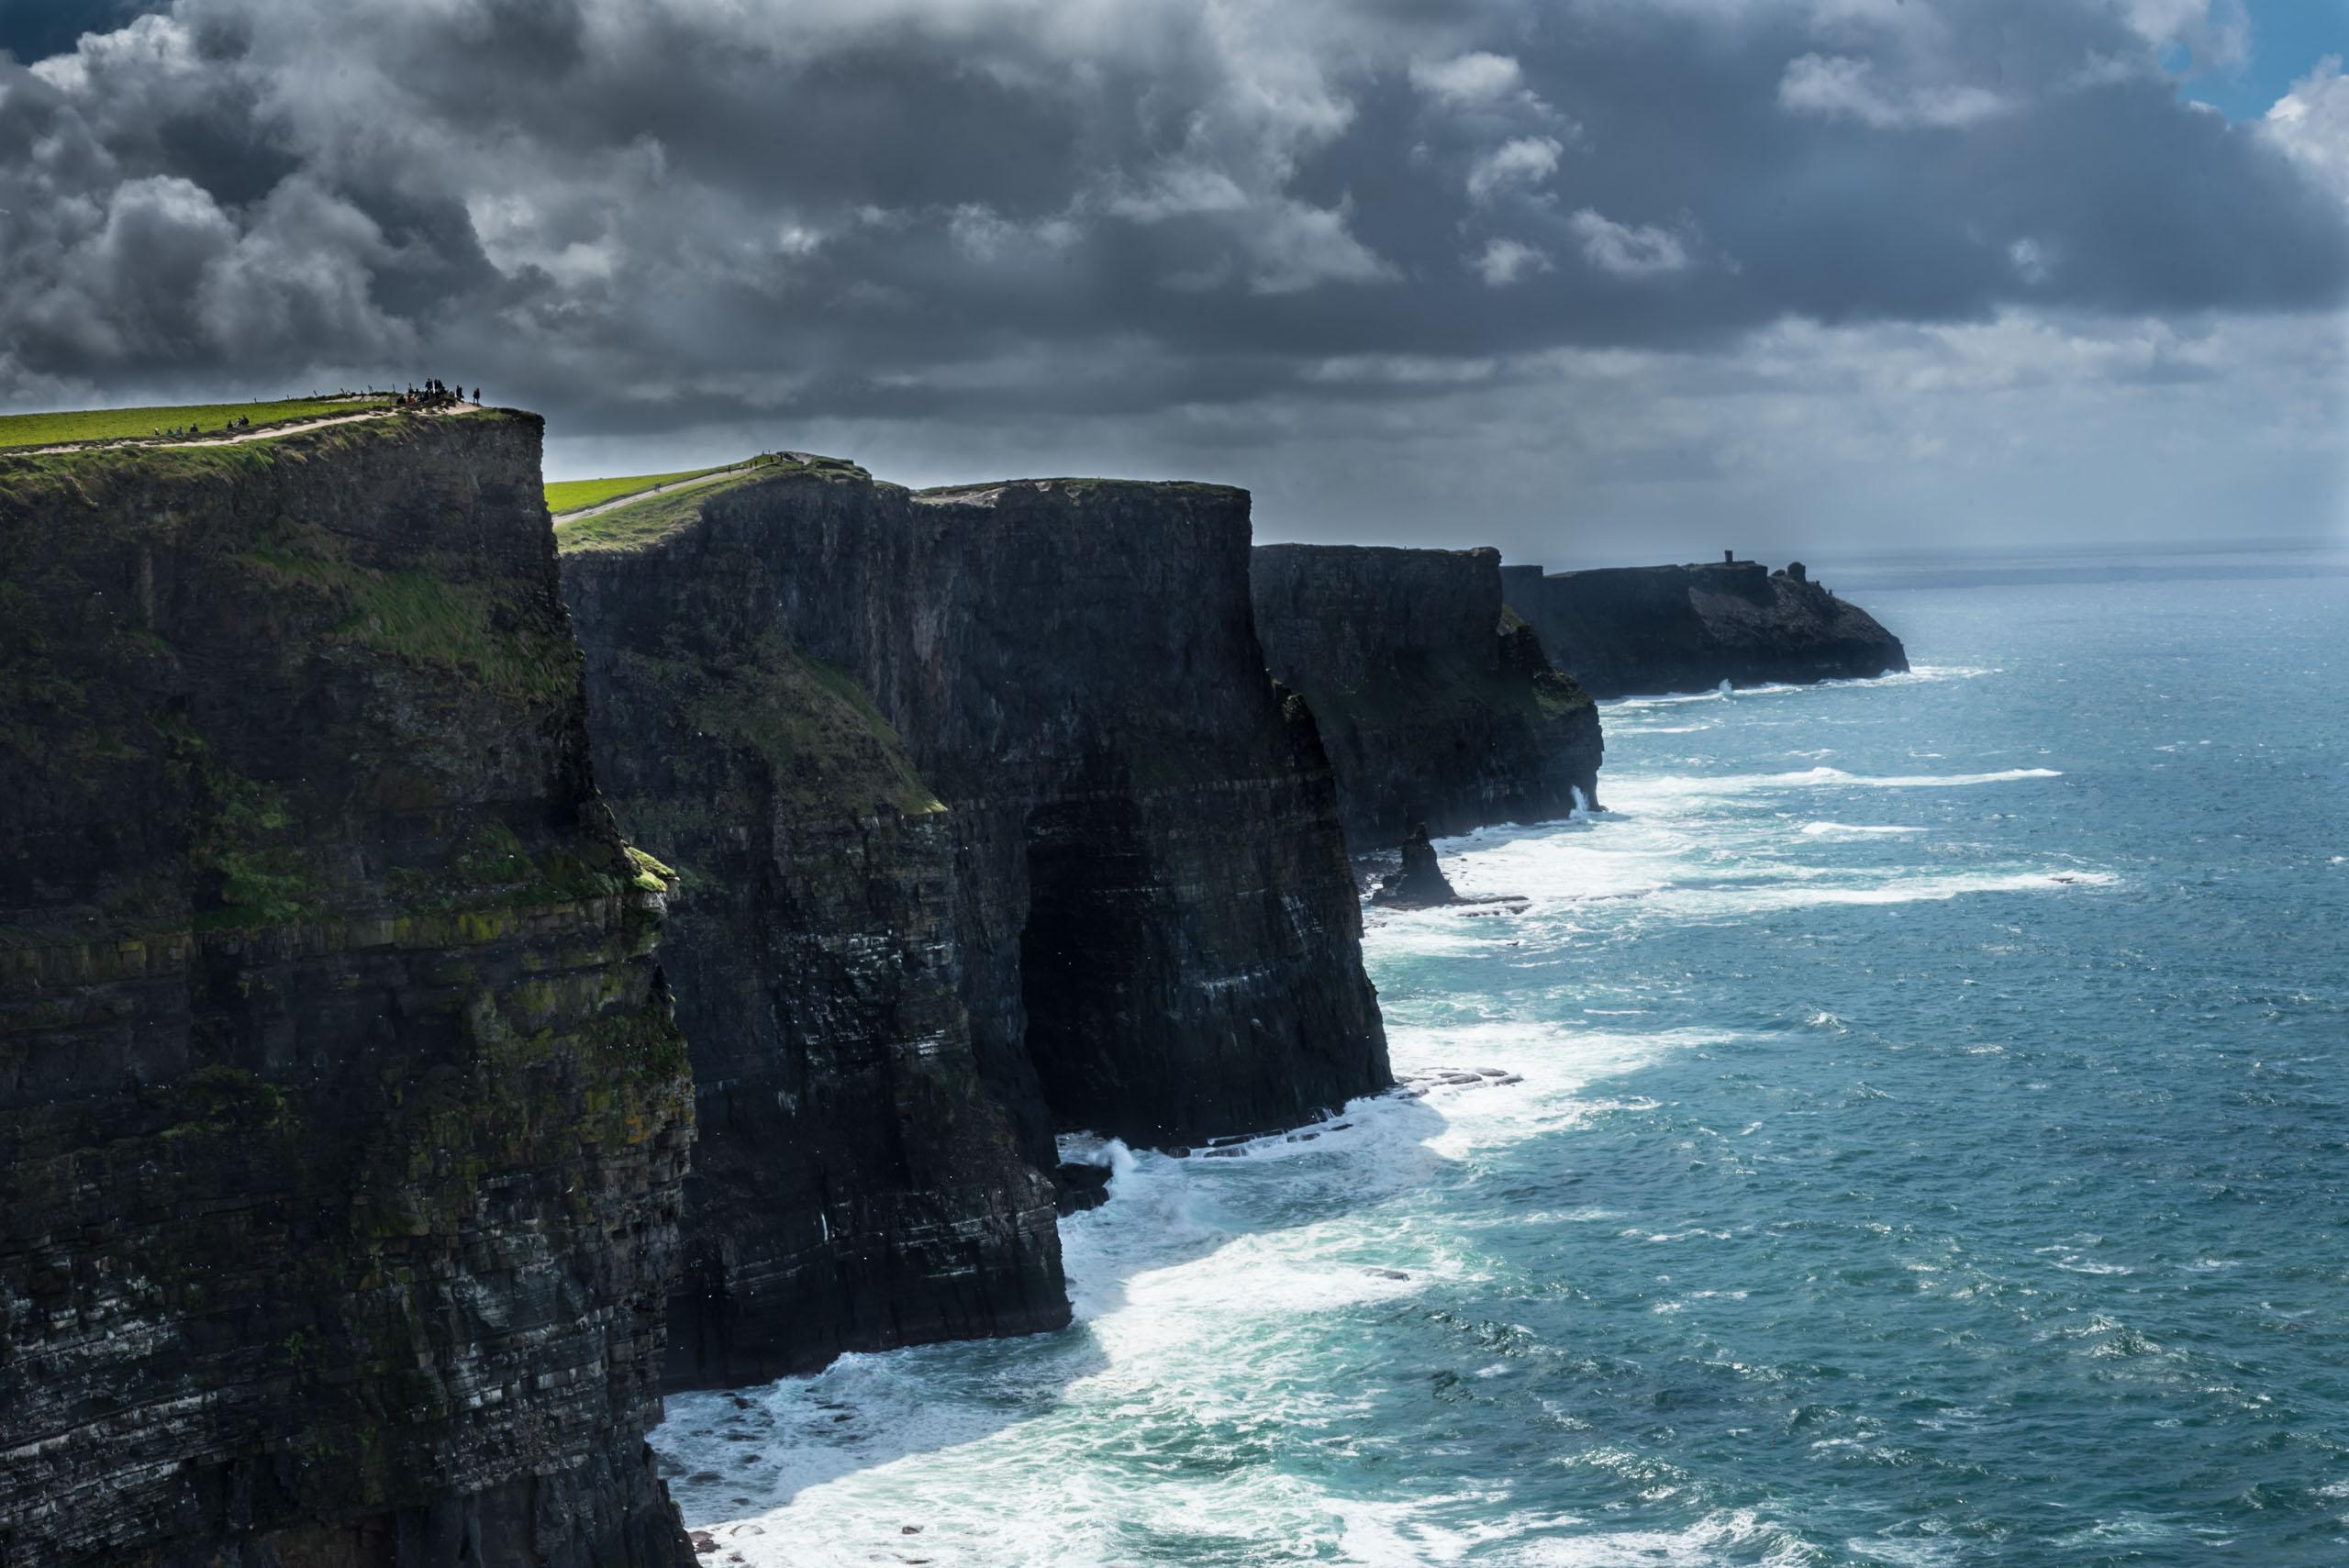 Some views of the Cliffs of Moher - Album on Imgur